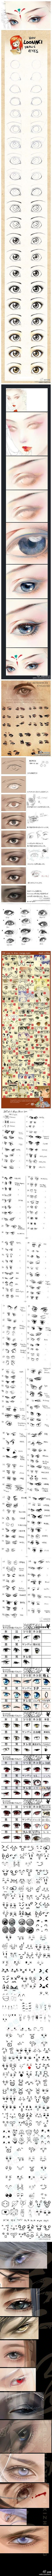 How to Draw Eyes- I am not an artist, but this is great for kids with sketching ability.